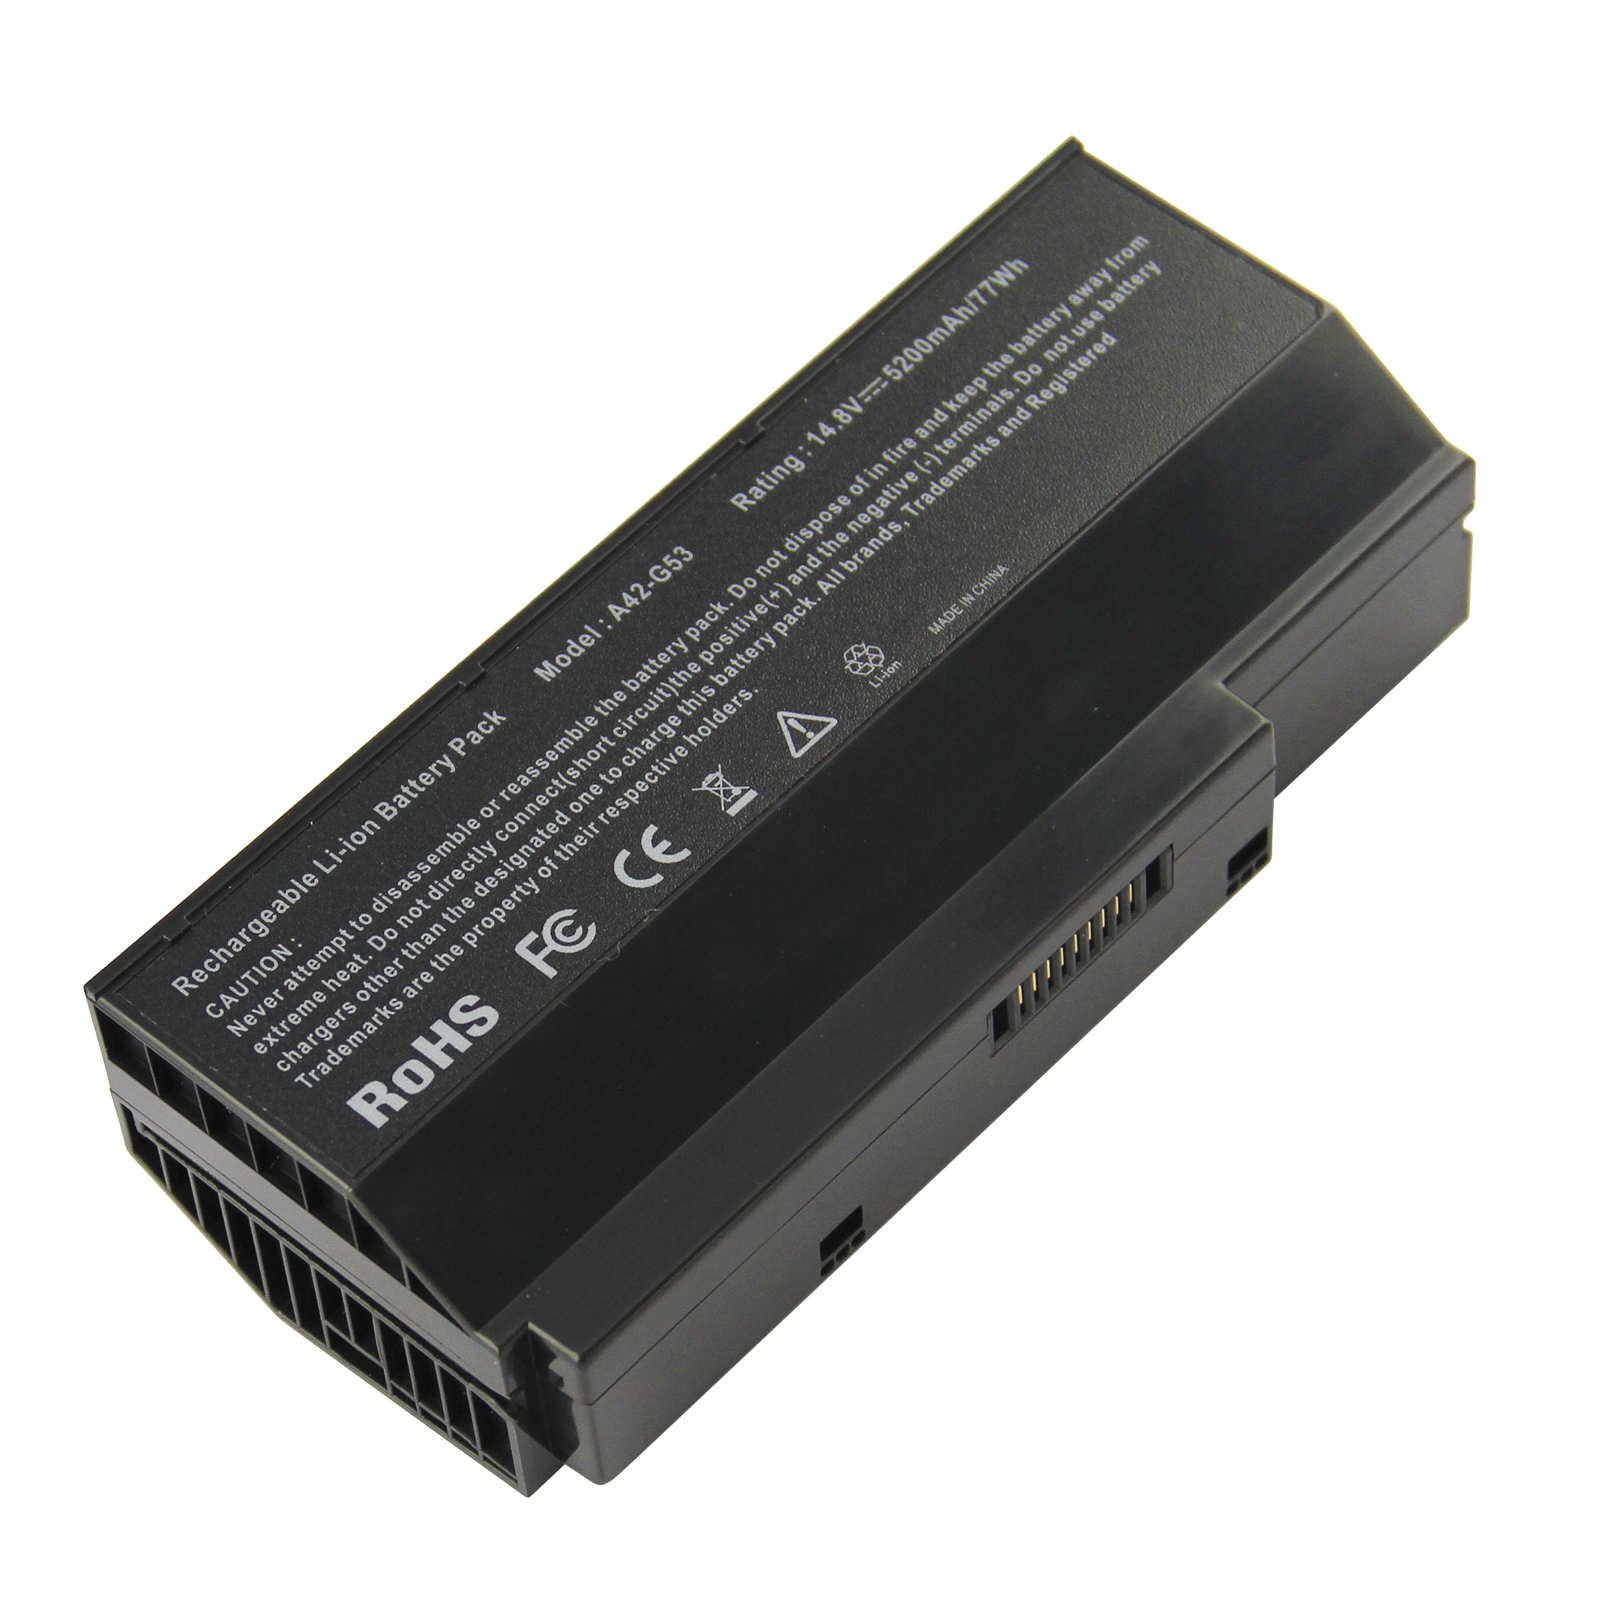 1c3bf85acaa0 ARyee 5200mAh 14.8V Battery Laptop Battery Replacement for Asus G53 ...